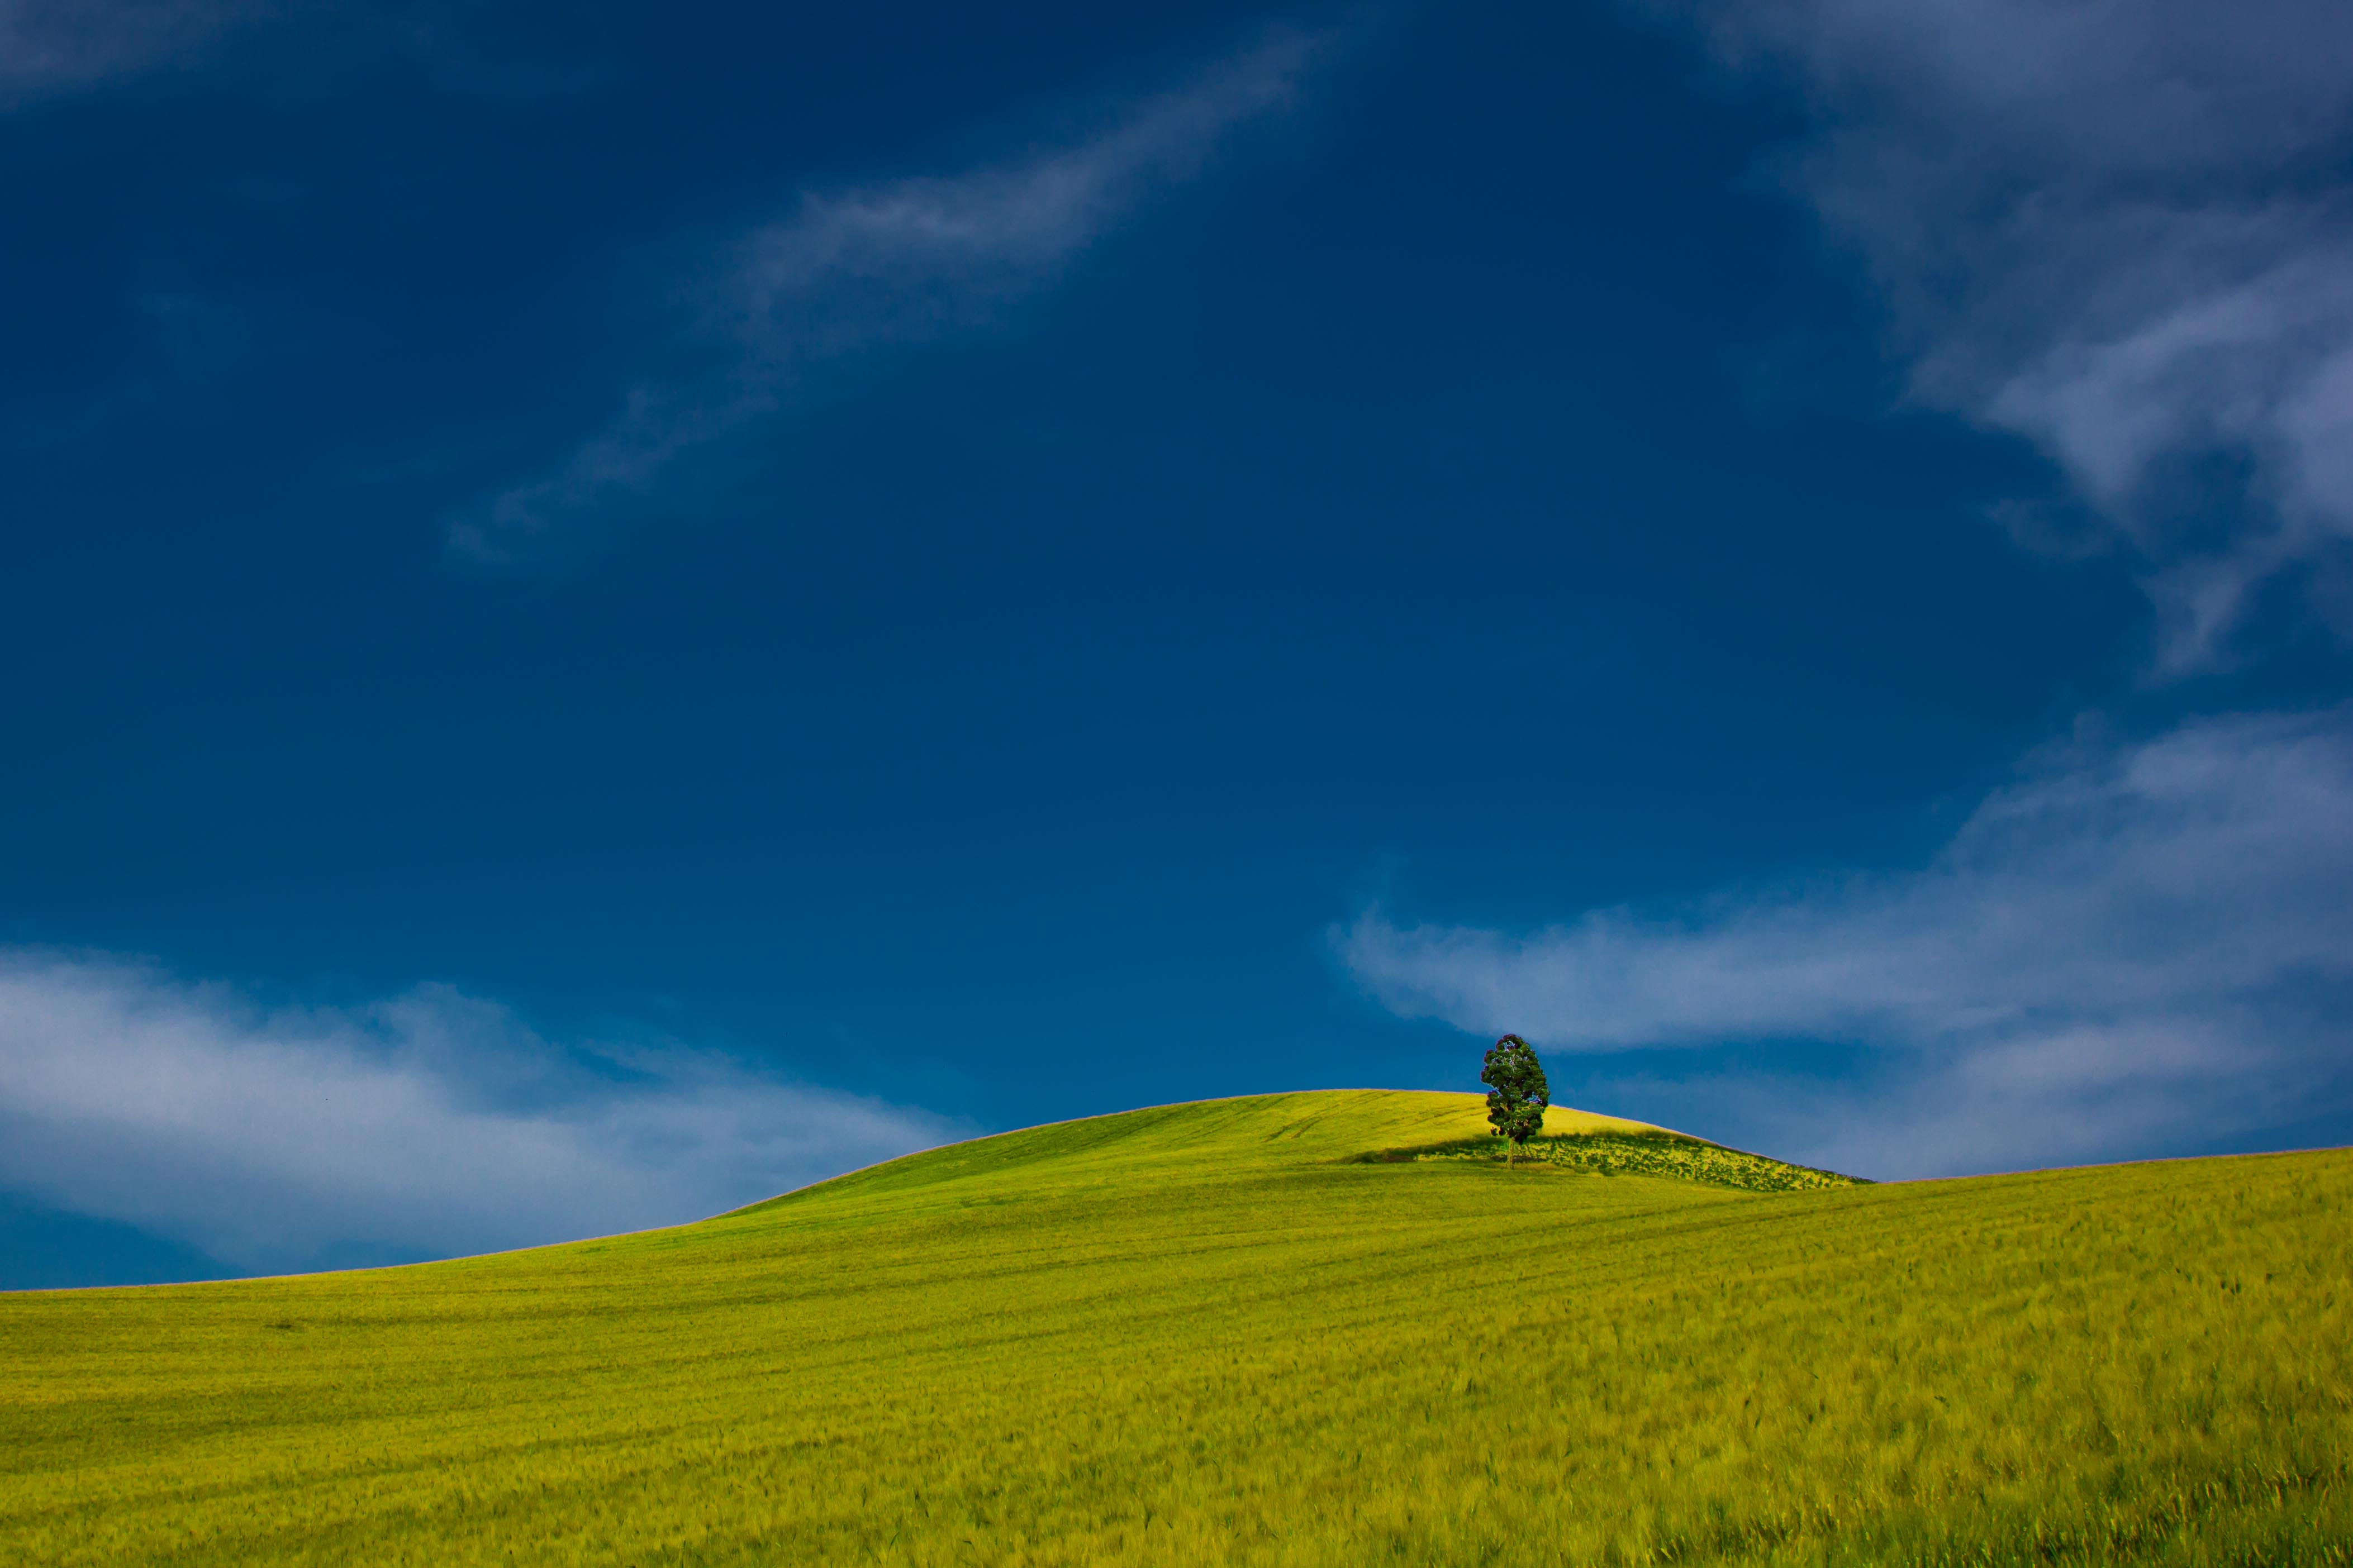 Beautiful Wallpapers For Iphone 4 Green Tree On Grass Field During Daytime 183 Free Stock Photo